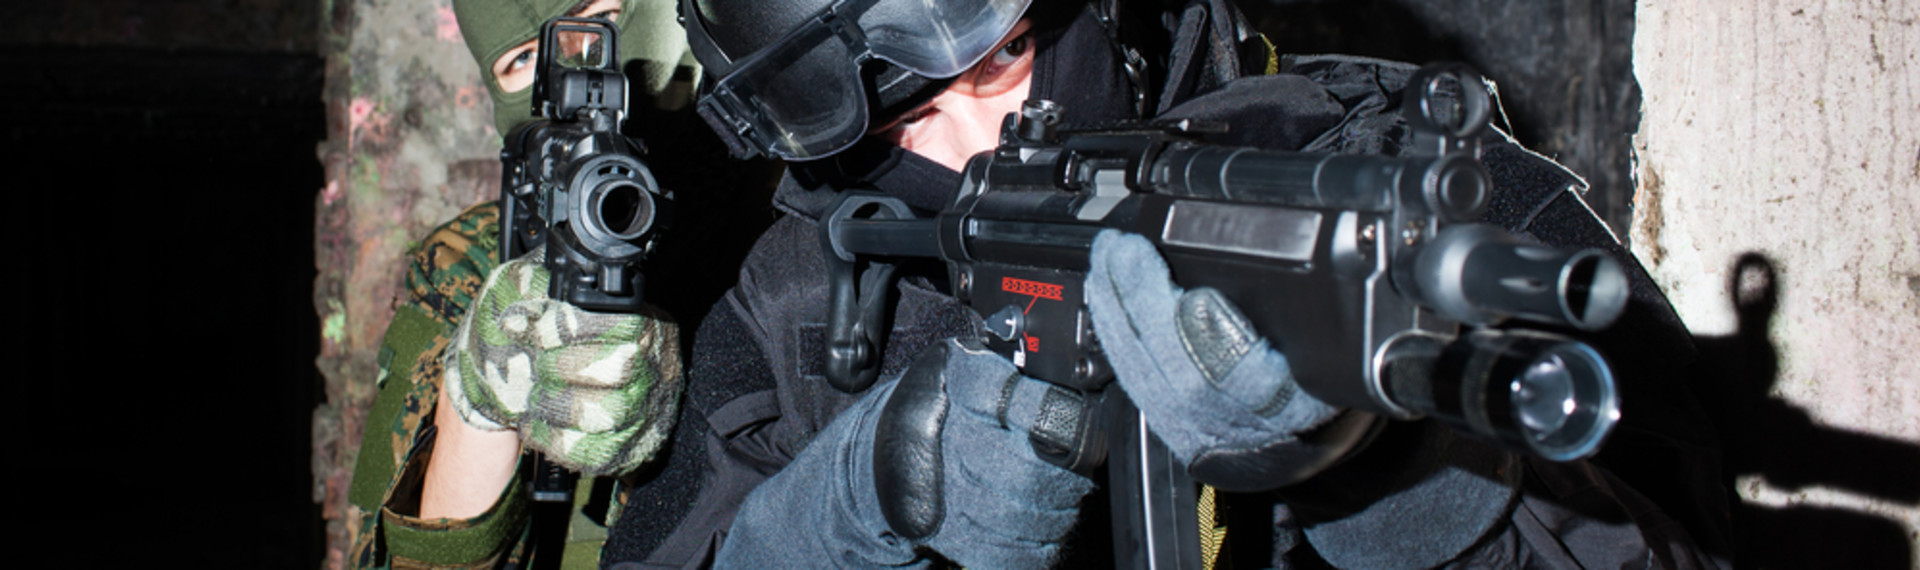 Bratislava Special Forces Shooting image